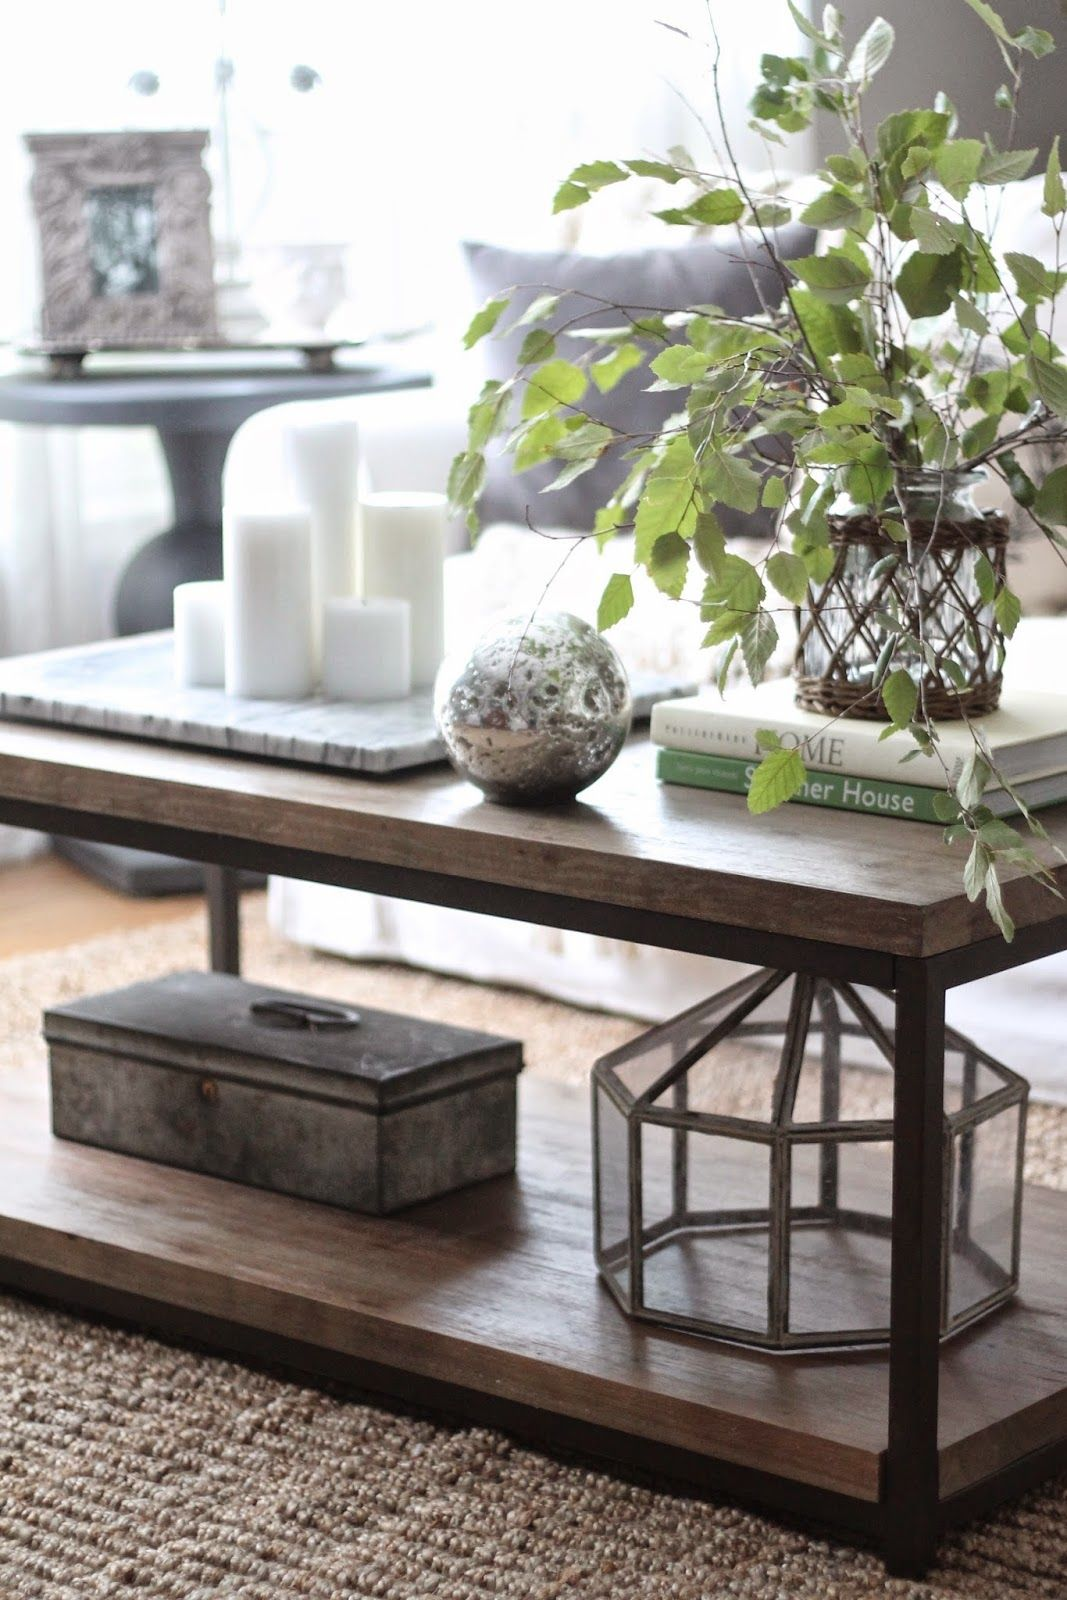 Centros Mesa Salon 3 Ways To Style A Coffee Table Deco Inspiration Decoracion